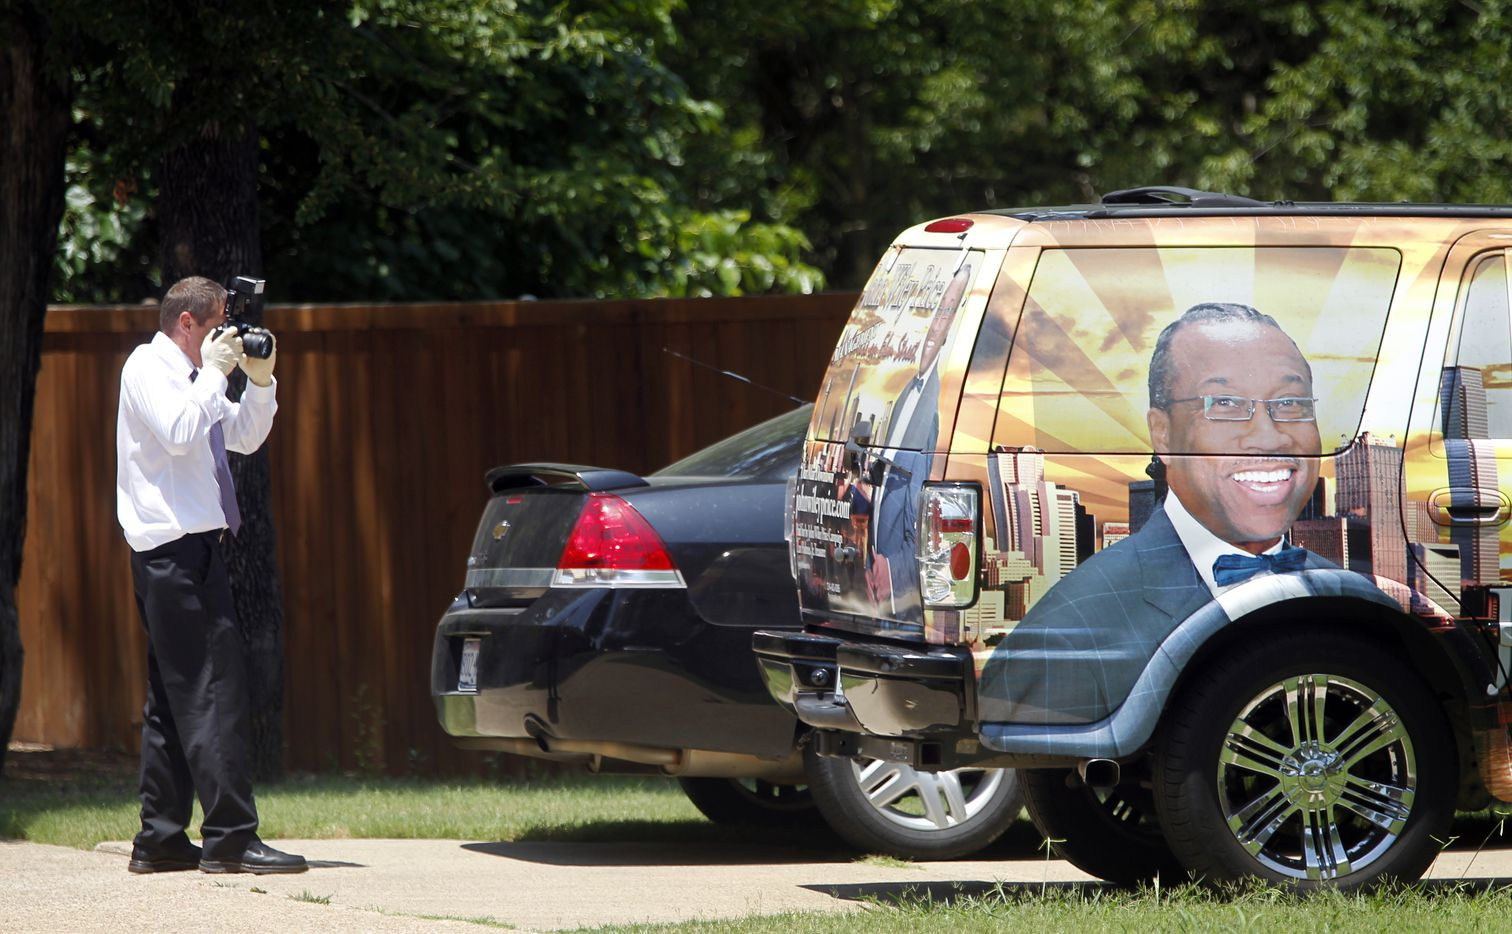 A law enforcement agent photographs a vehicle outside the DeSoto, Texas home of Dapheny Fain, the top assistant to Dallas County Commissioner John Wiley Price, in June 2011, as the FBI executed federal search warrants on Price's home and office, and those of key associates.